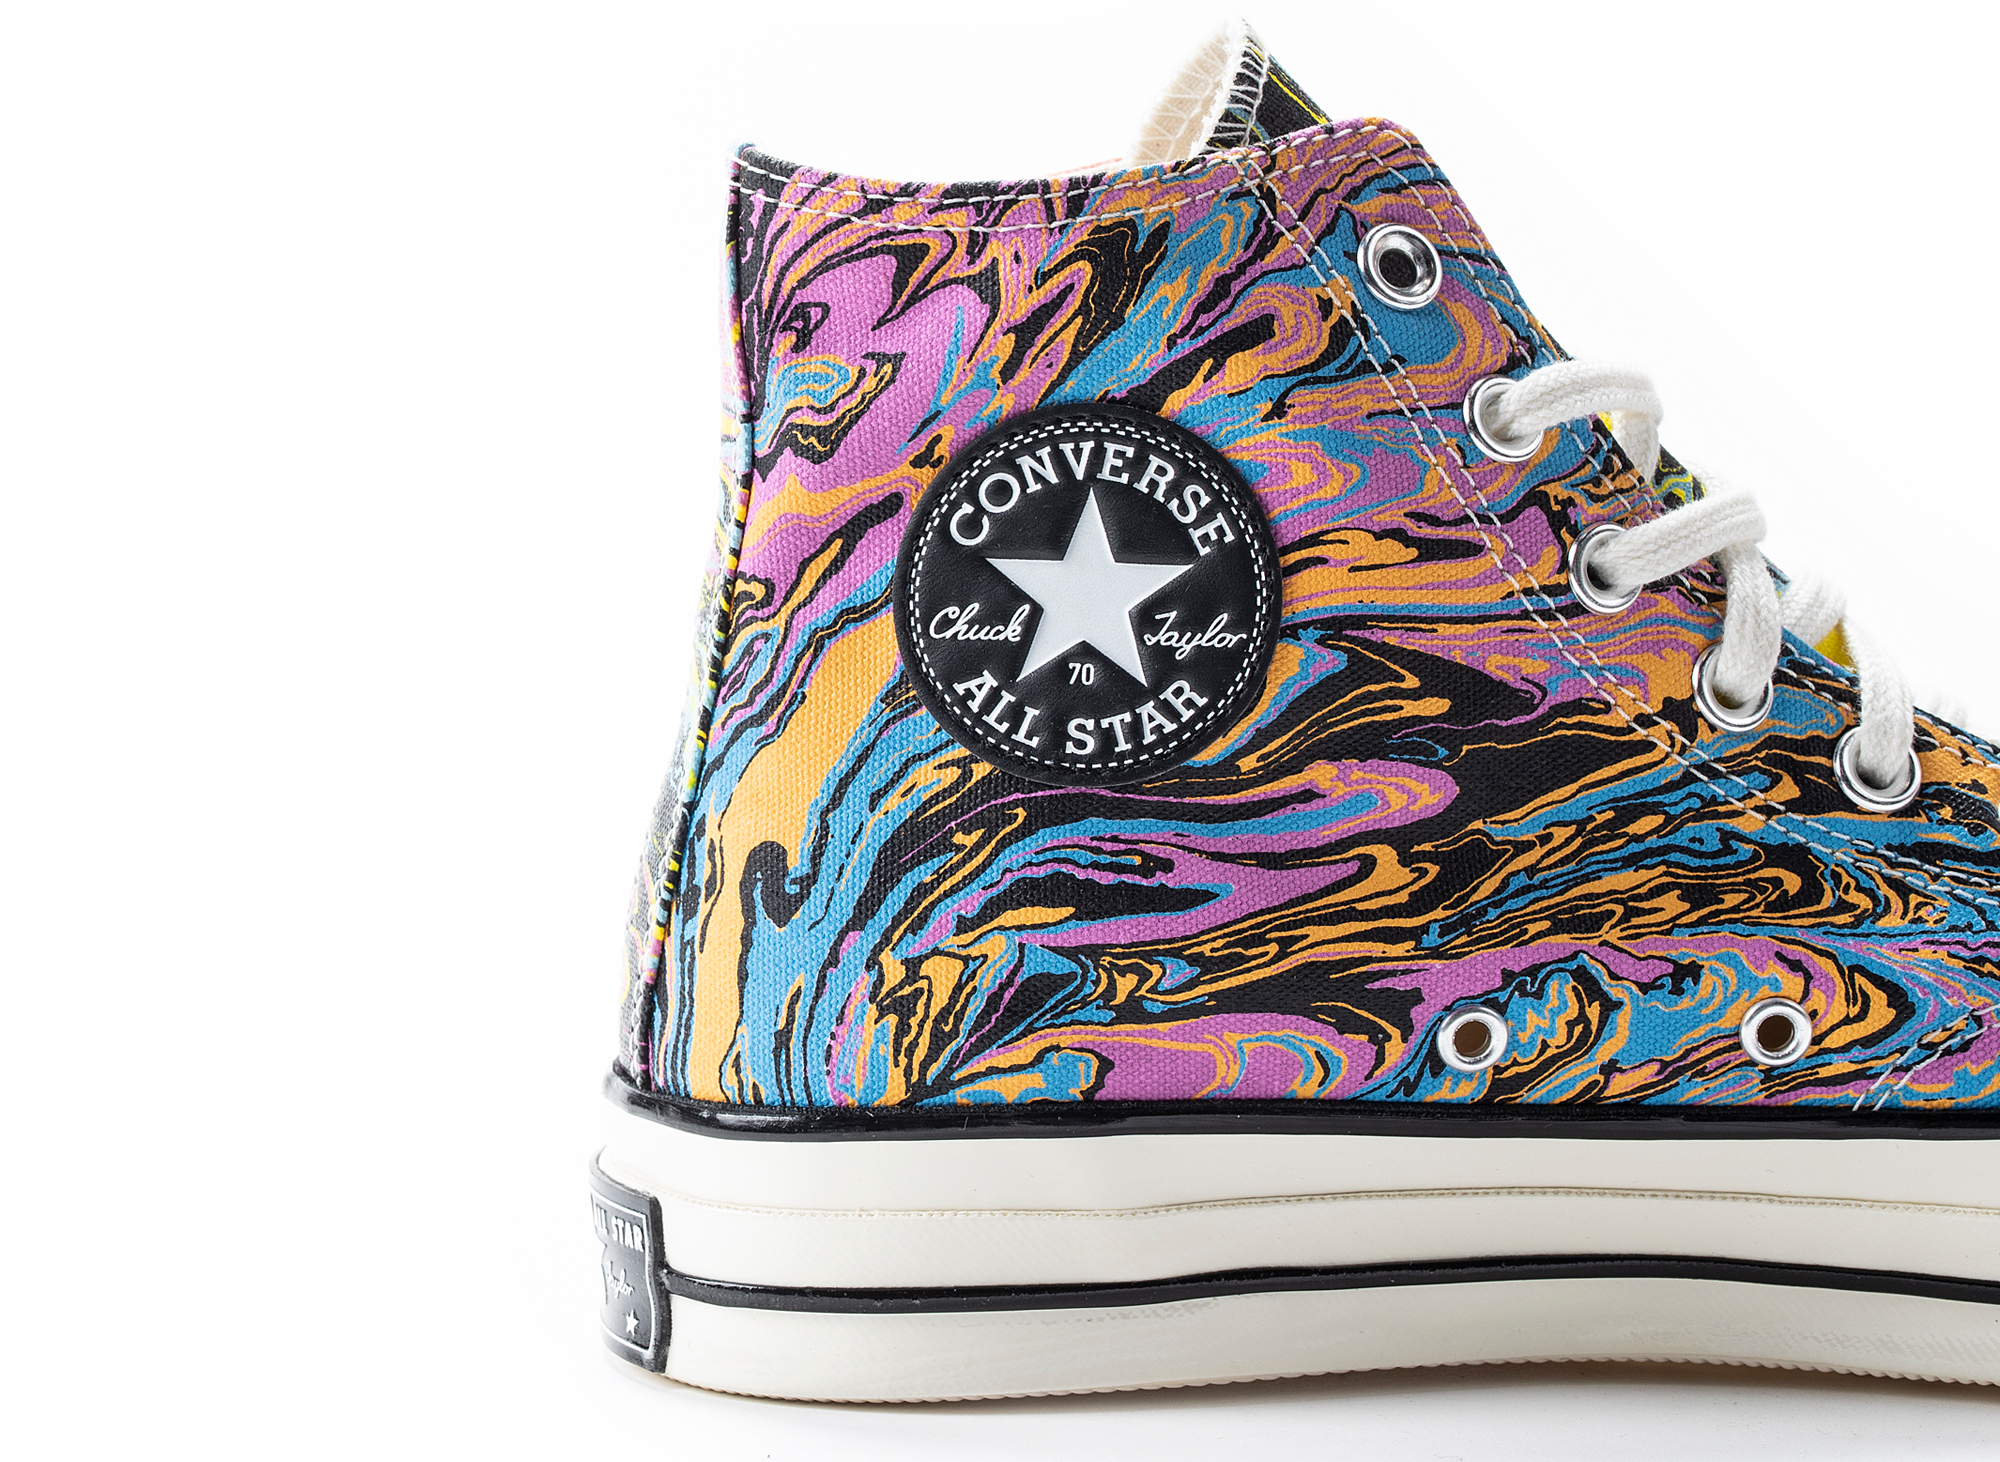 Converse Chuck 70 Hi Marble Udgivelsesdato 1